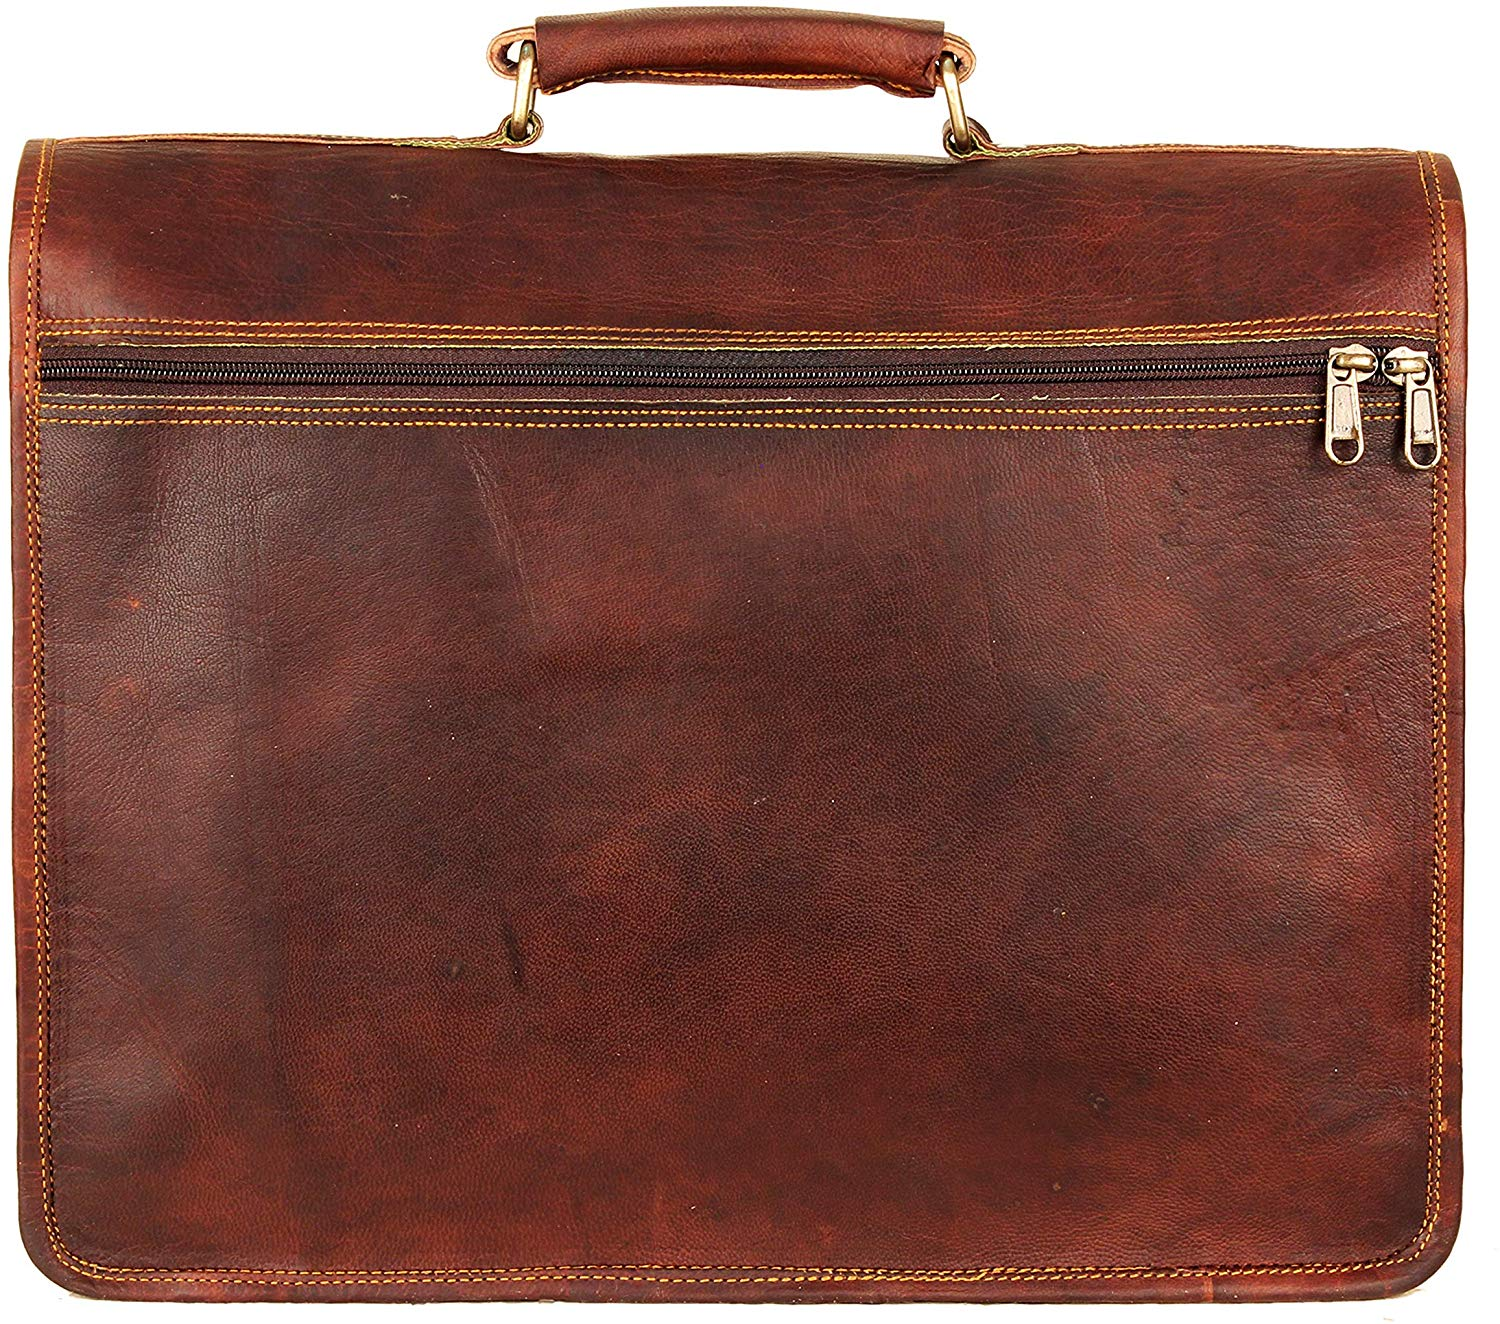 Full Grain Large Leather Briefcase Bag with Push Clip